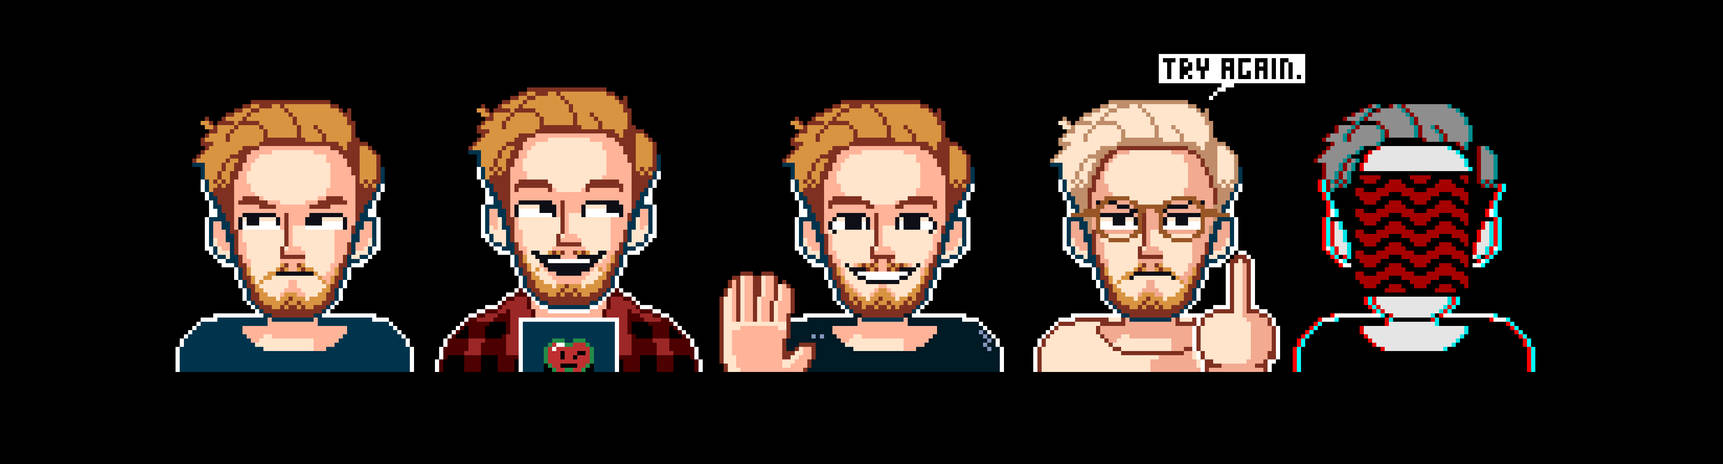 the many (few) faces of PewDiePie by Vikra-Archive